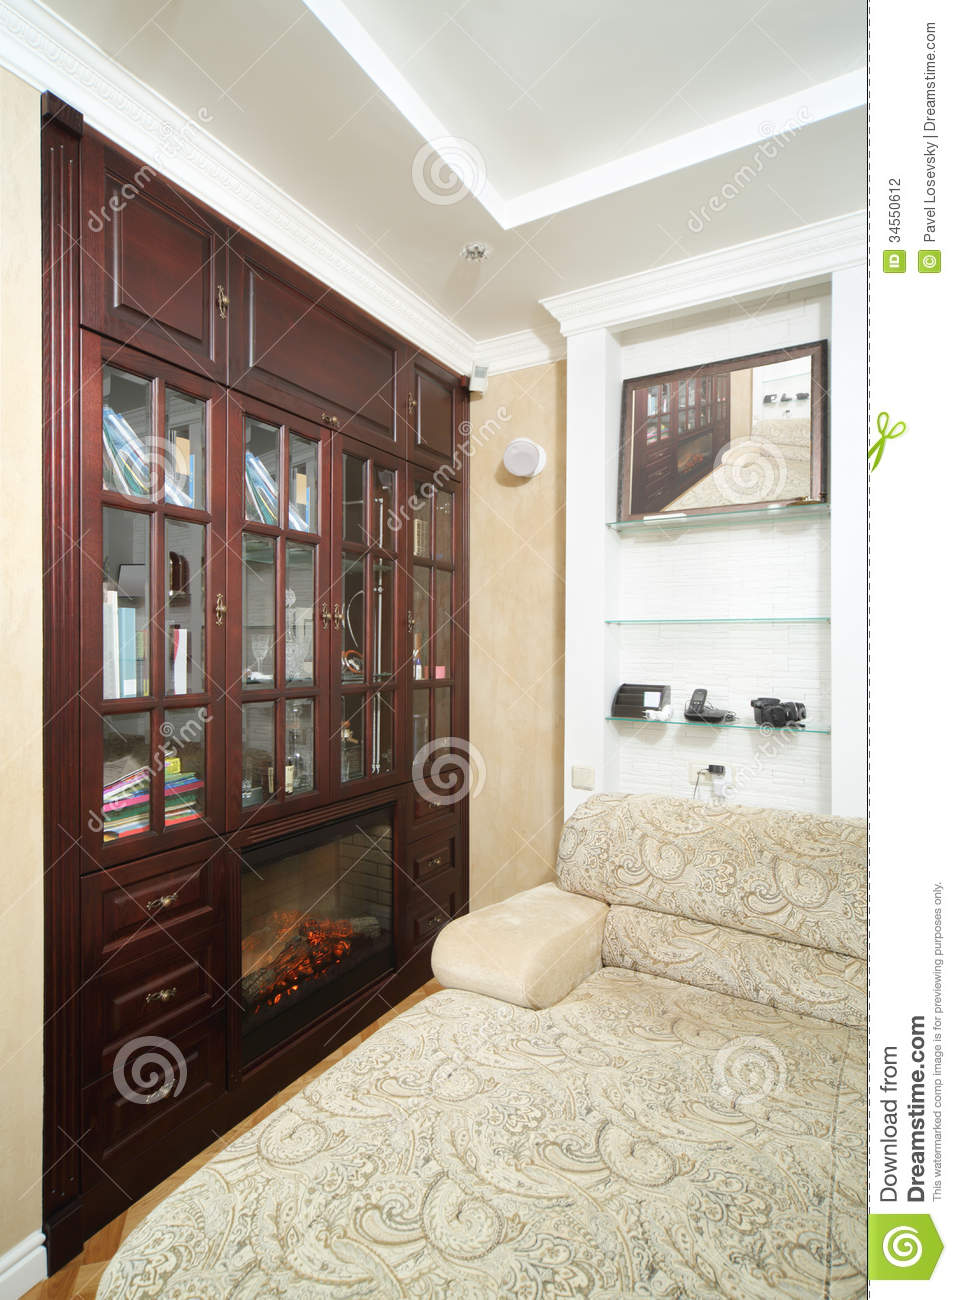 Room With Sofa Big Wooden Bookcase With Fireplace Stock